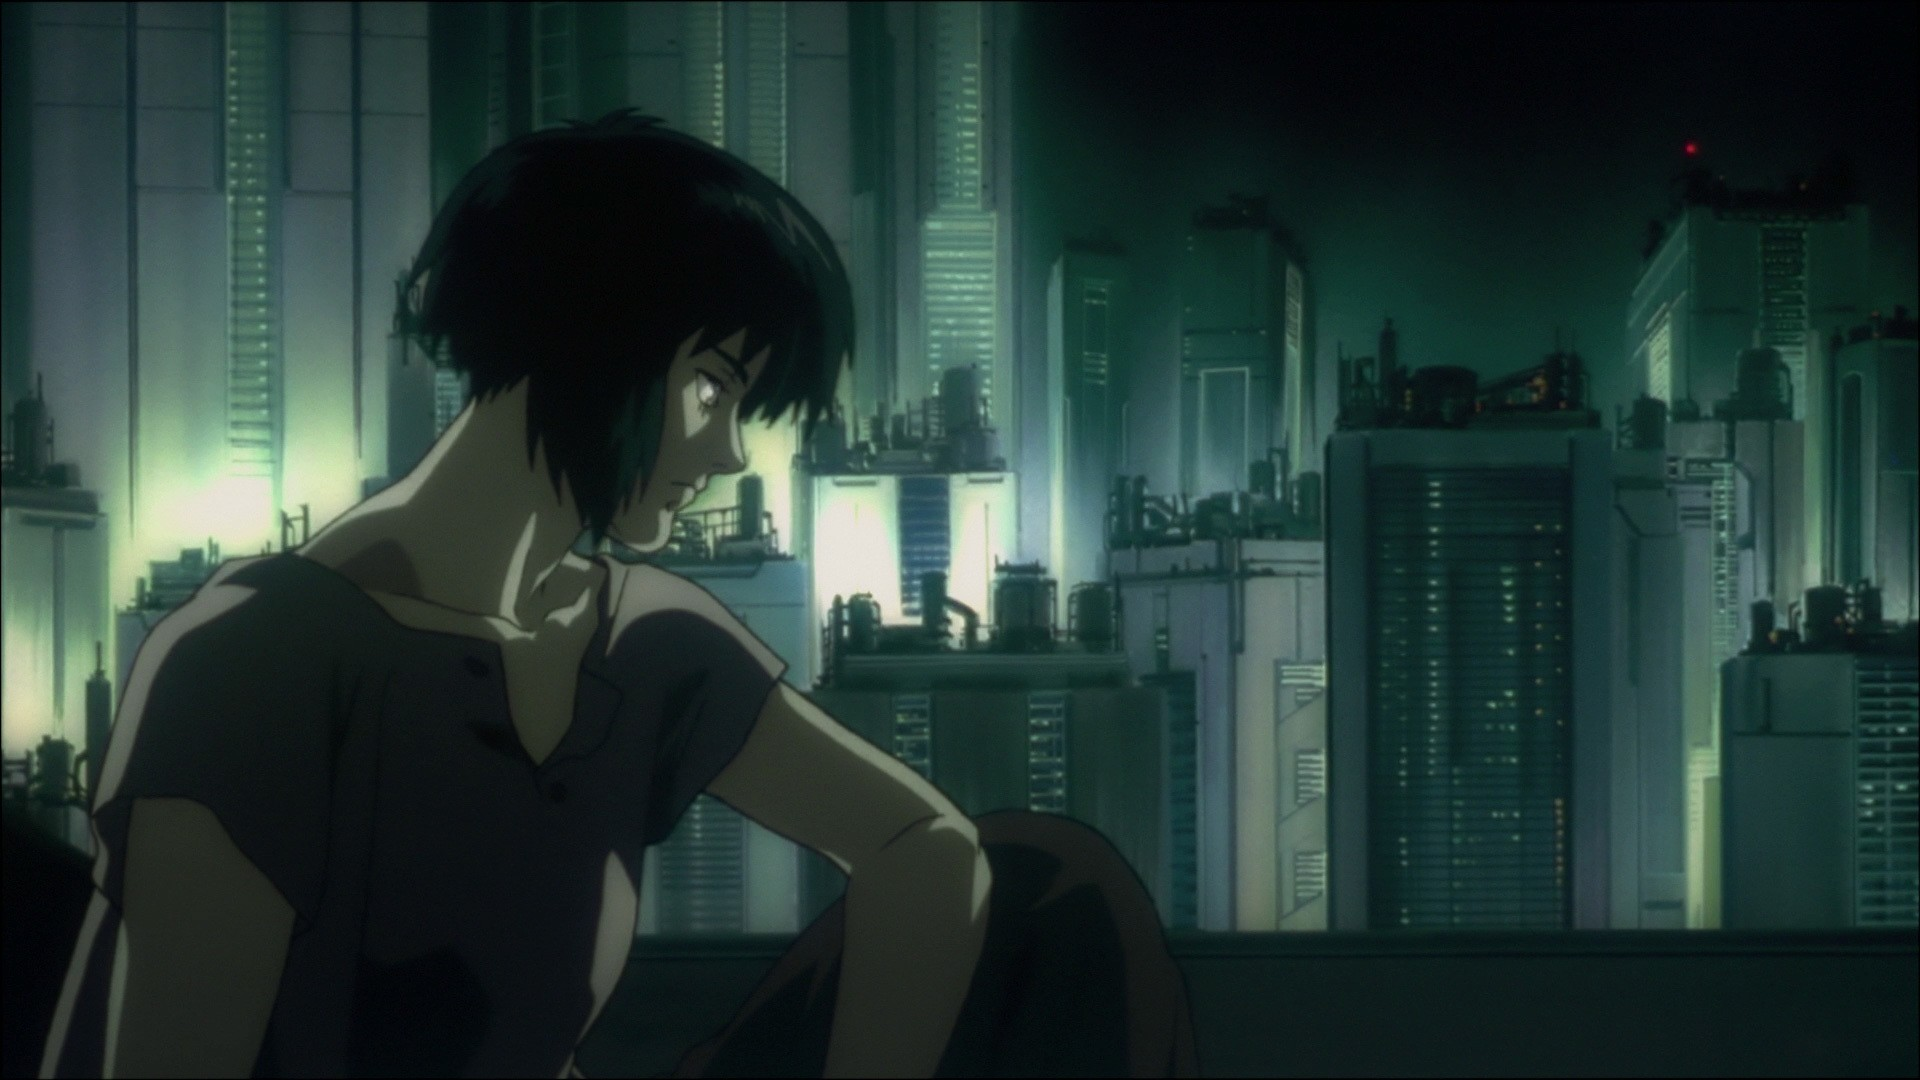 The original Ghost in the Shell is iconic anime, and a rich philosophical text